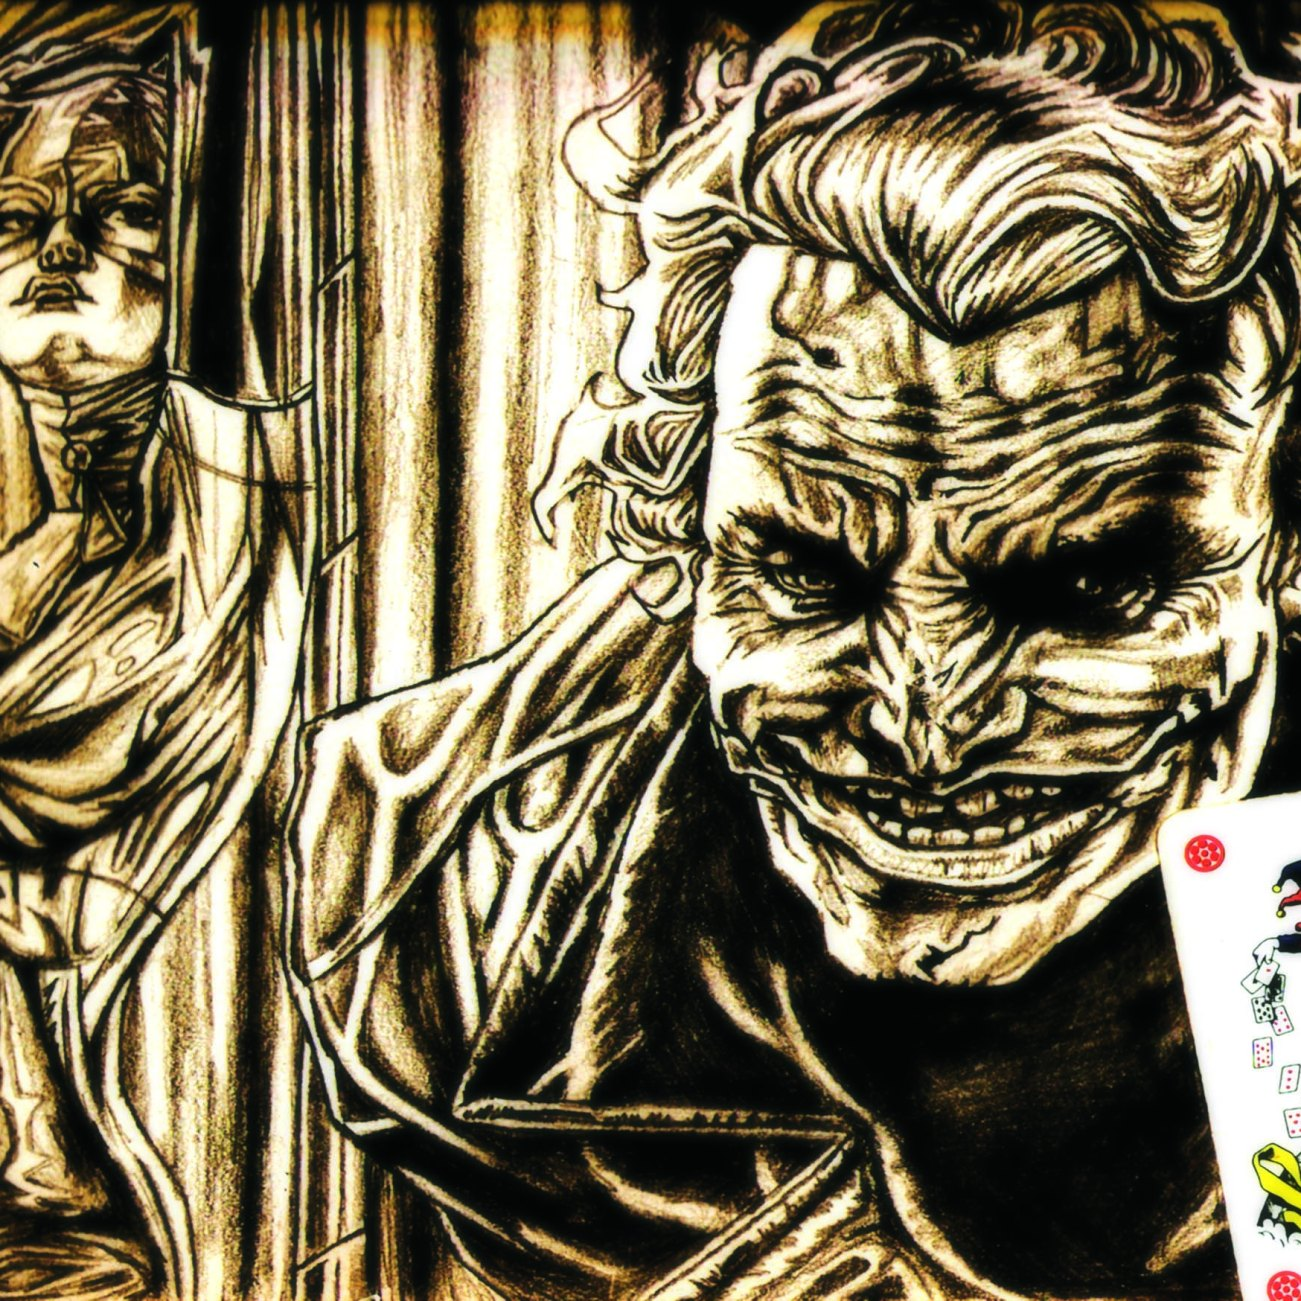 Pencil and Playing Card | A4 Sepia Paper | 2008